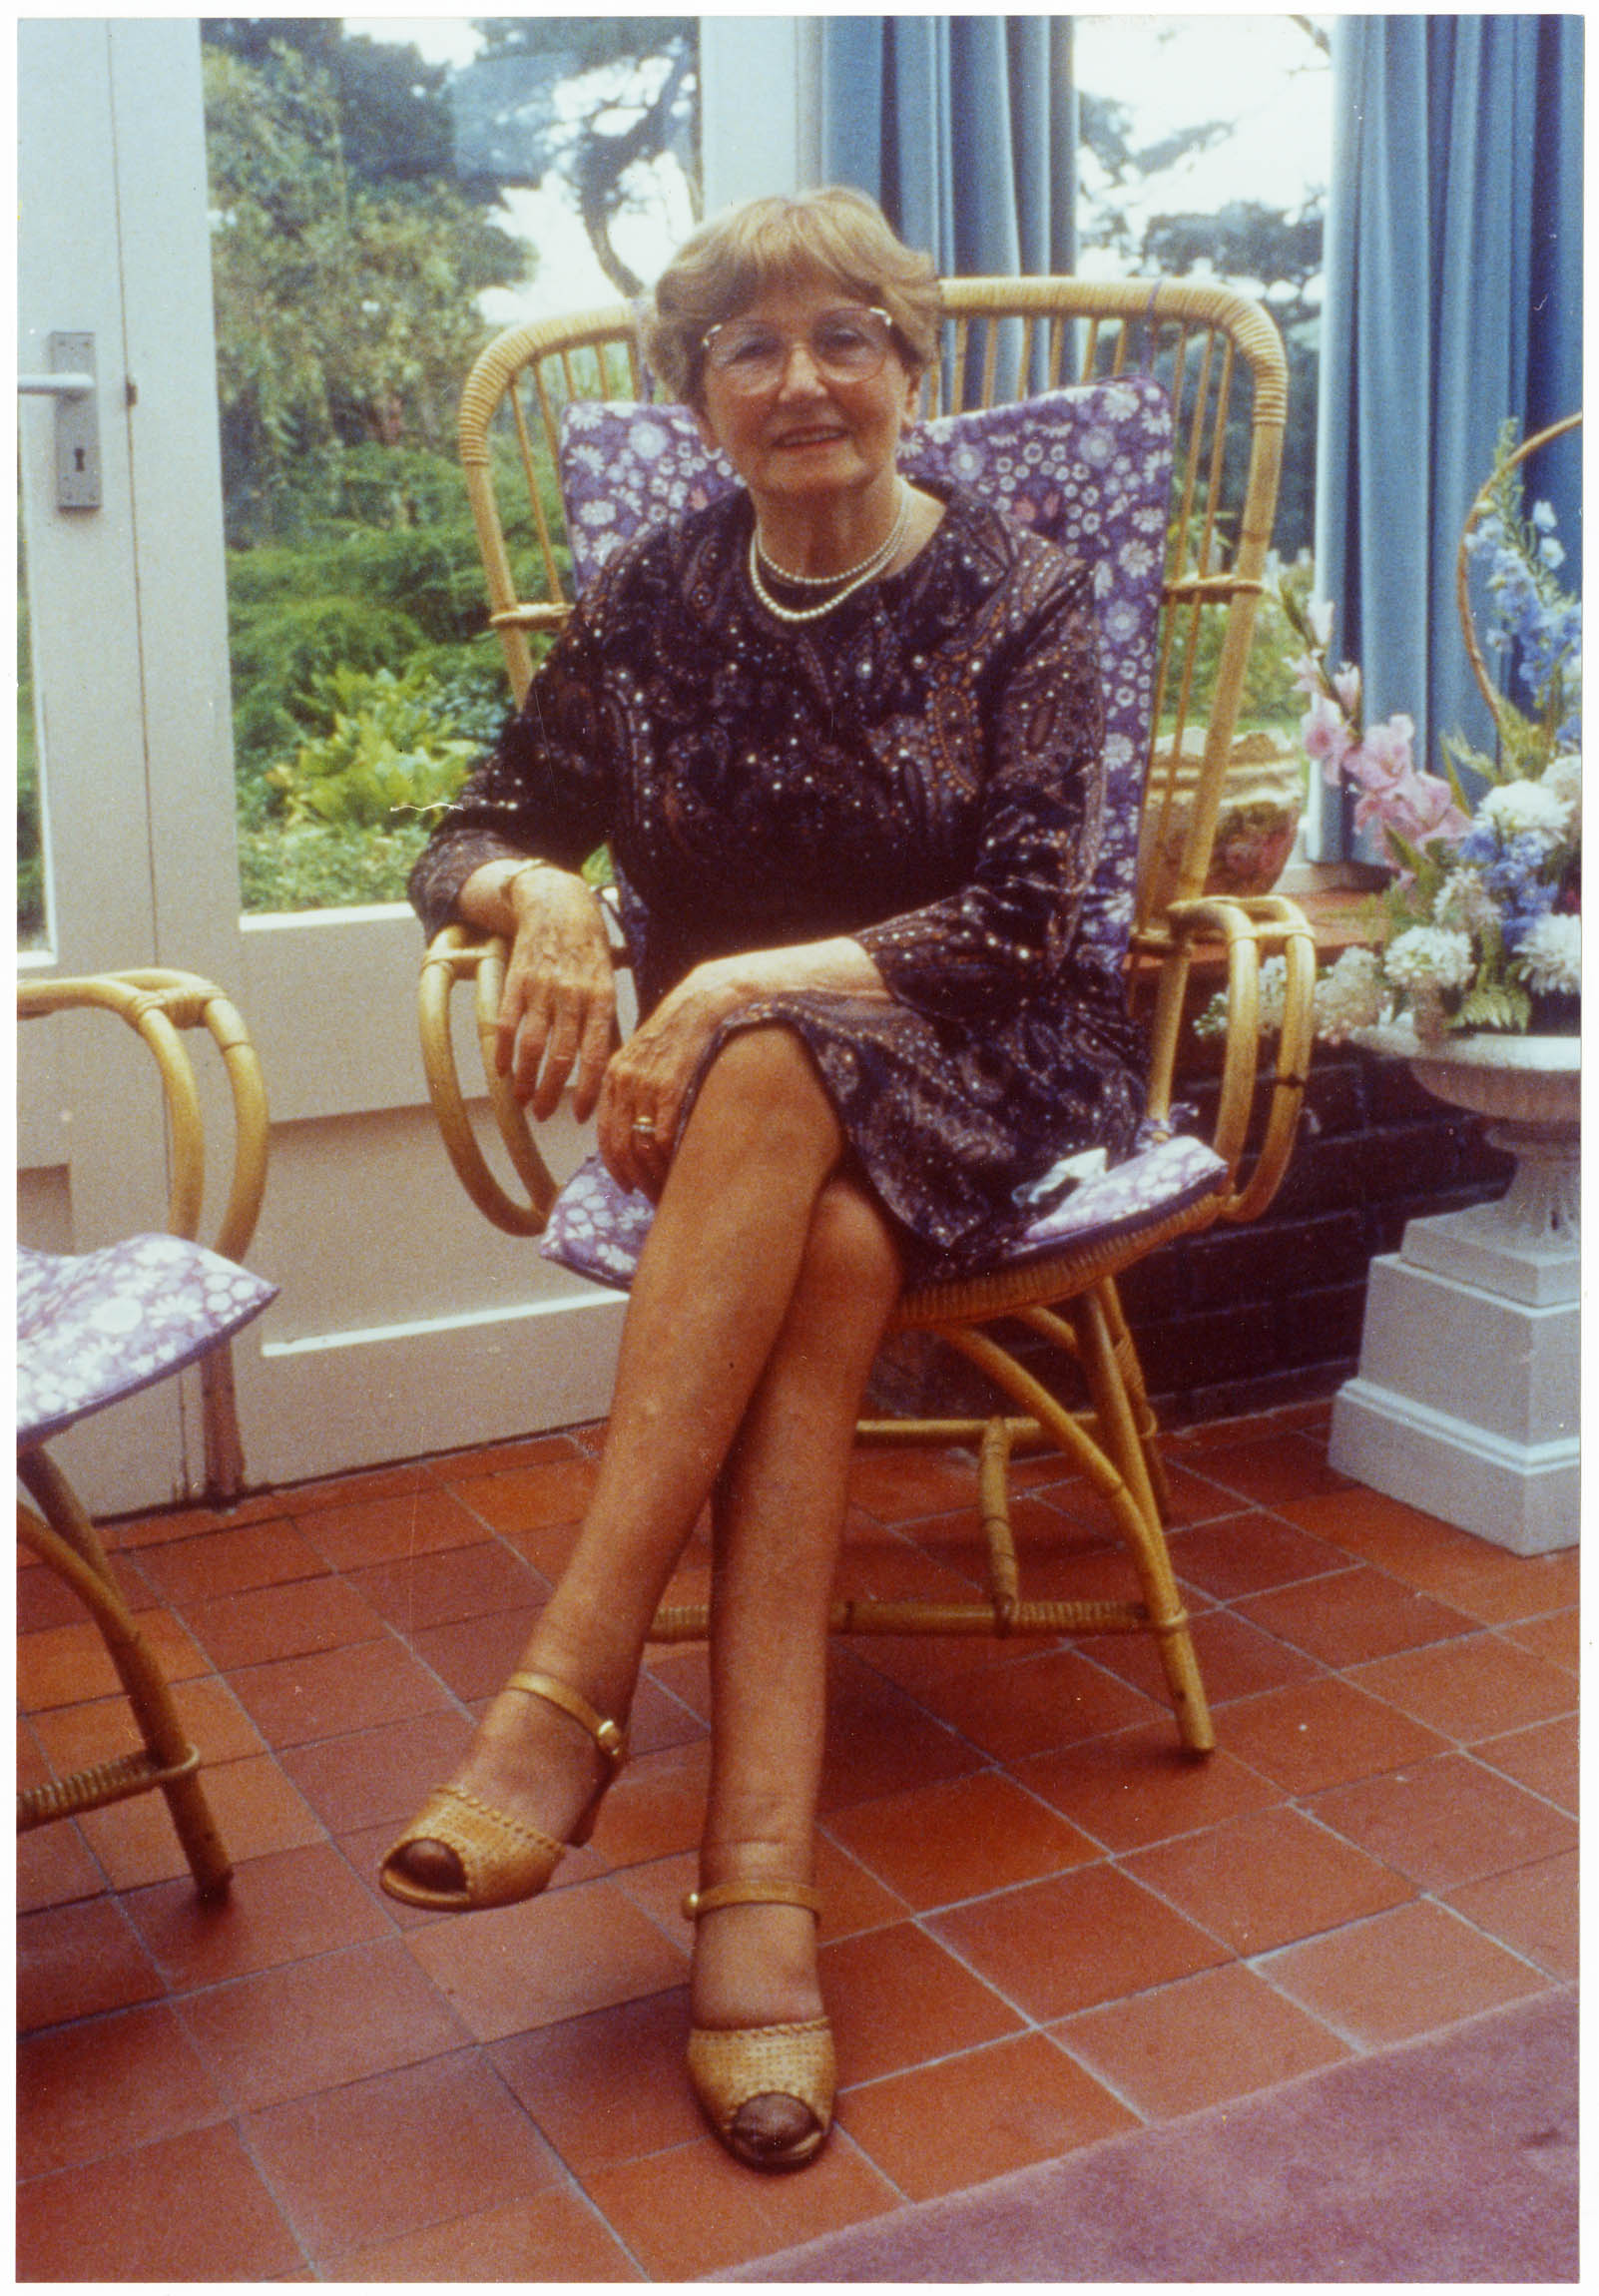 Uncatalogued photograph of Catherine cookson at home - 1985 (Special Collections: Catherine Cookson Collection)